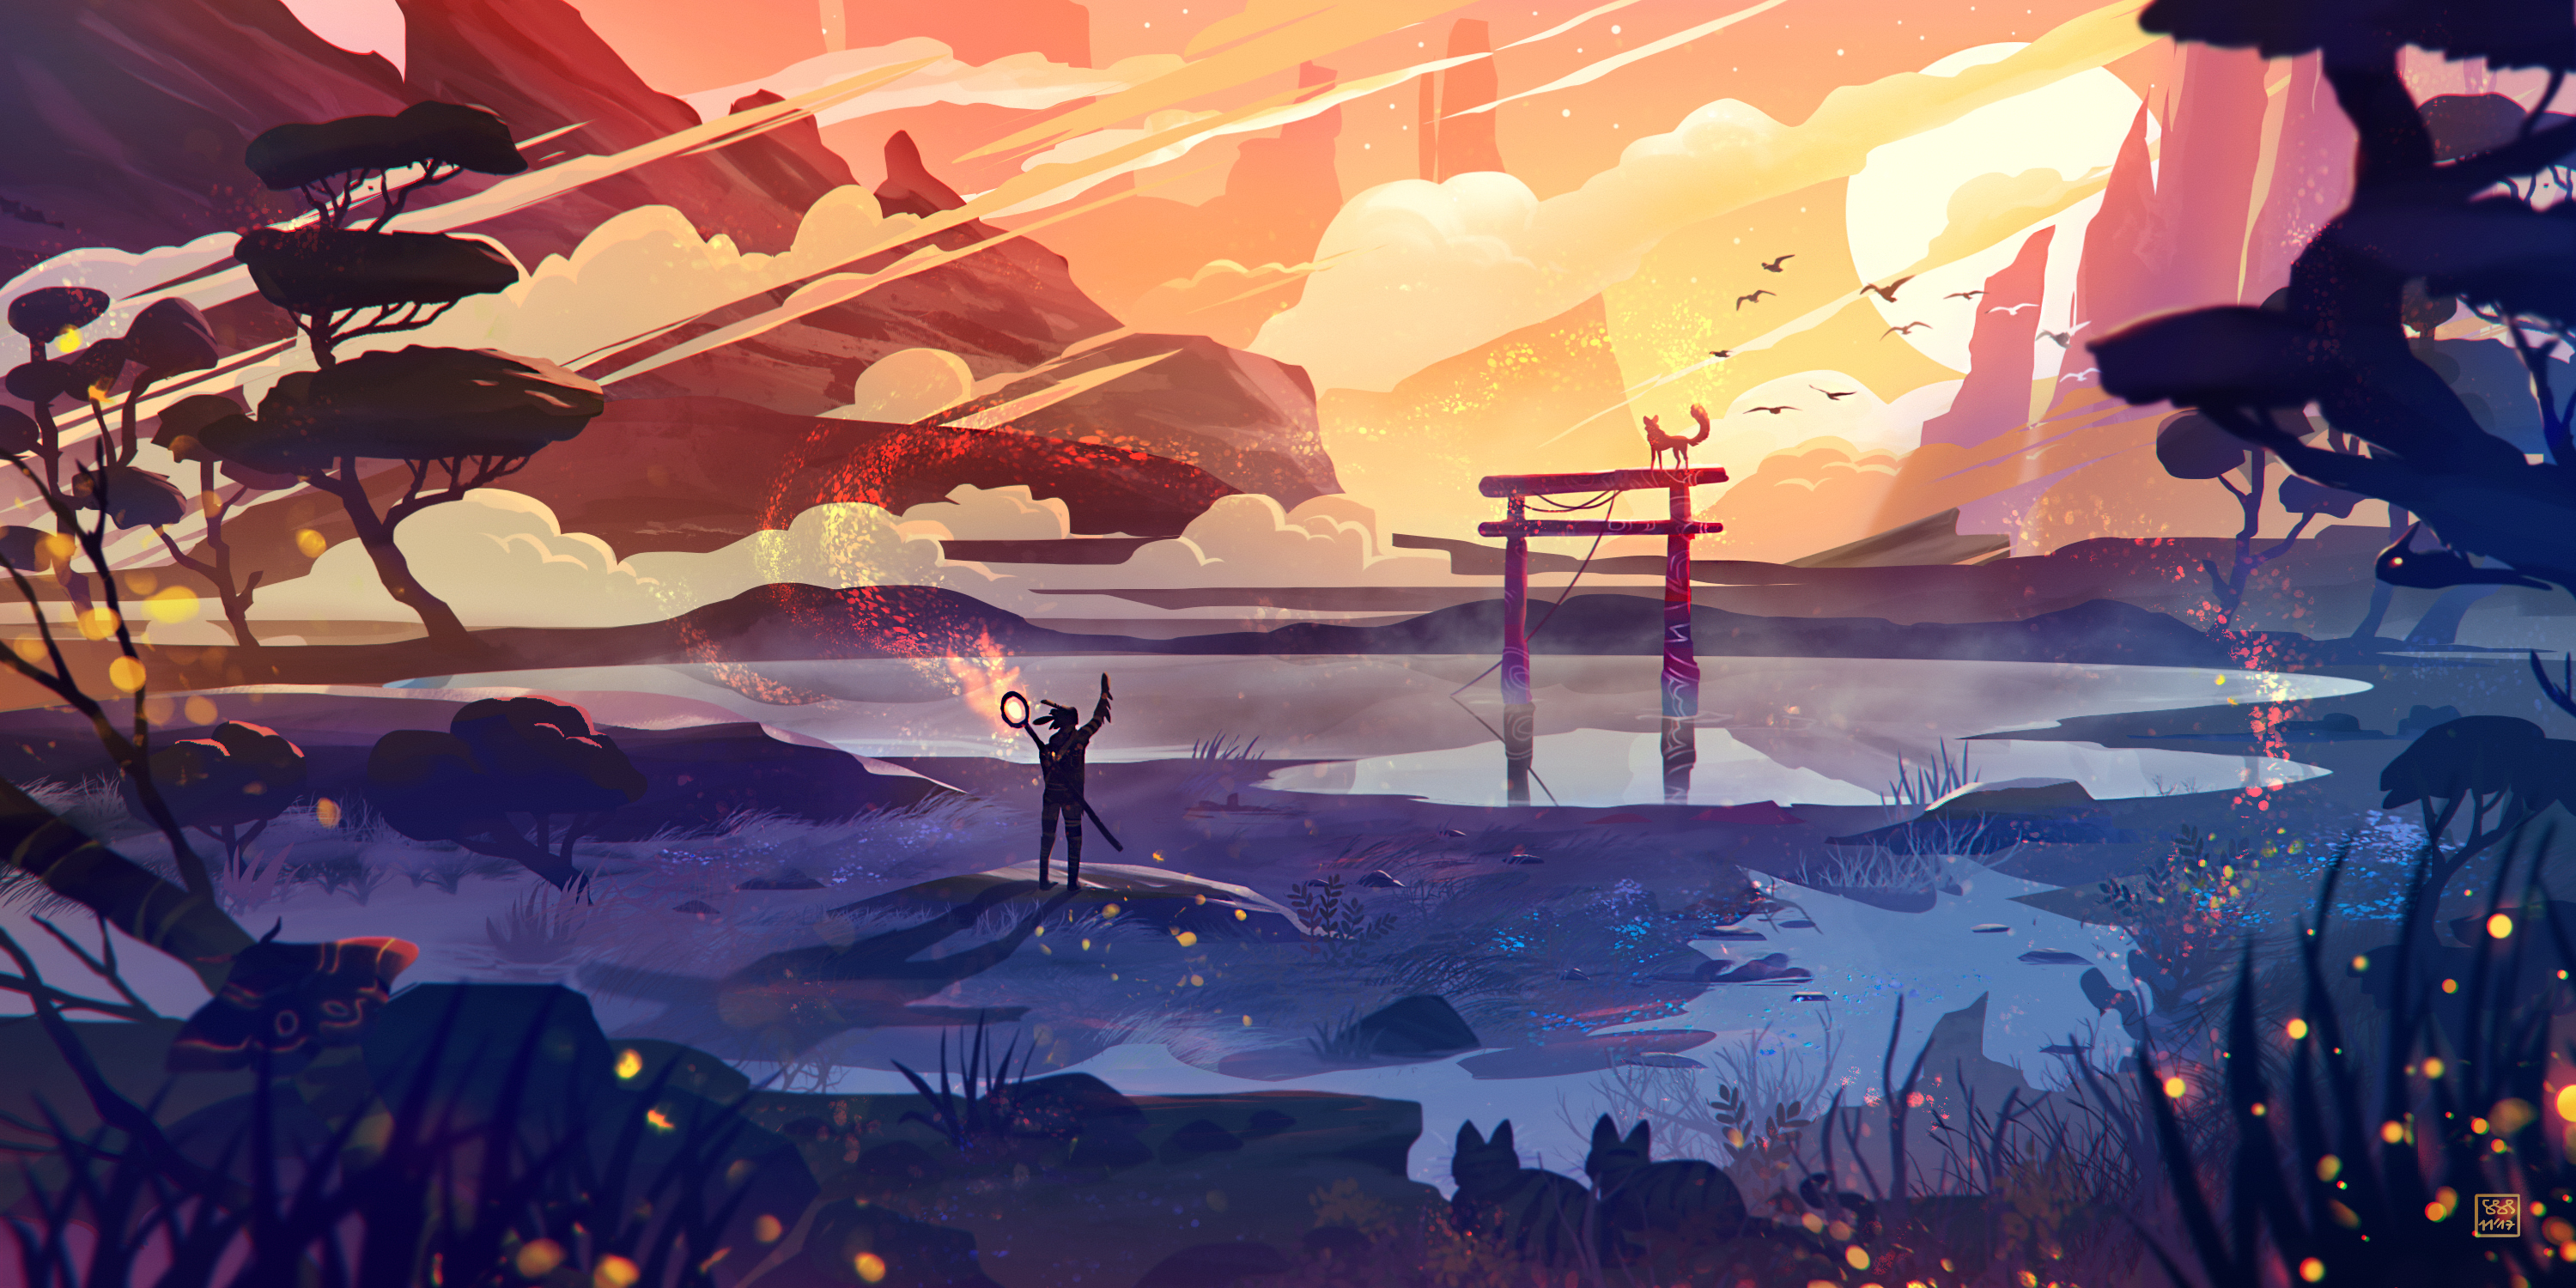 1280x1024 Torii Gate Paint Art 1280x1024 Resolution Wallpaper Hd